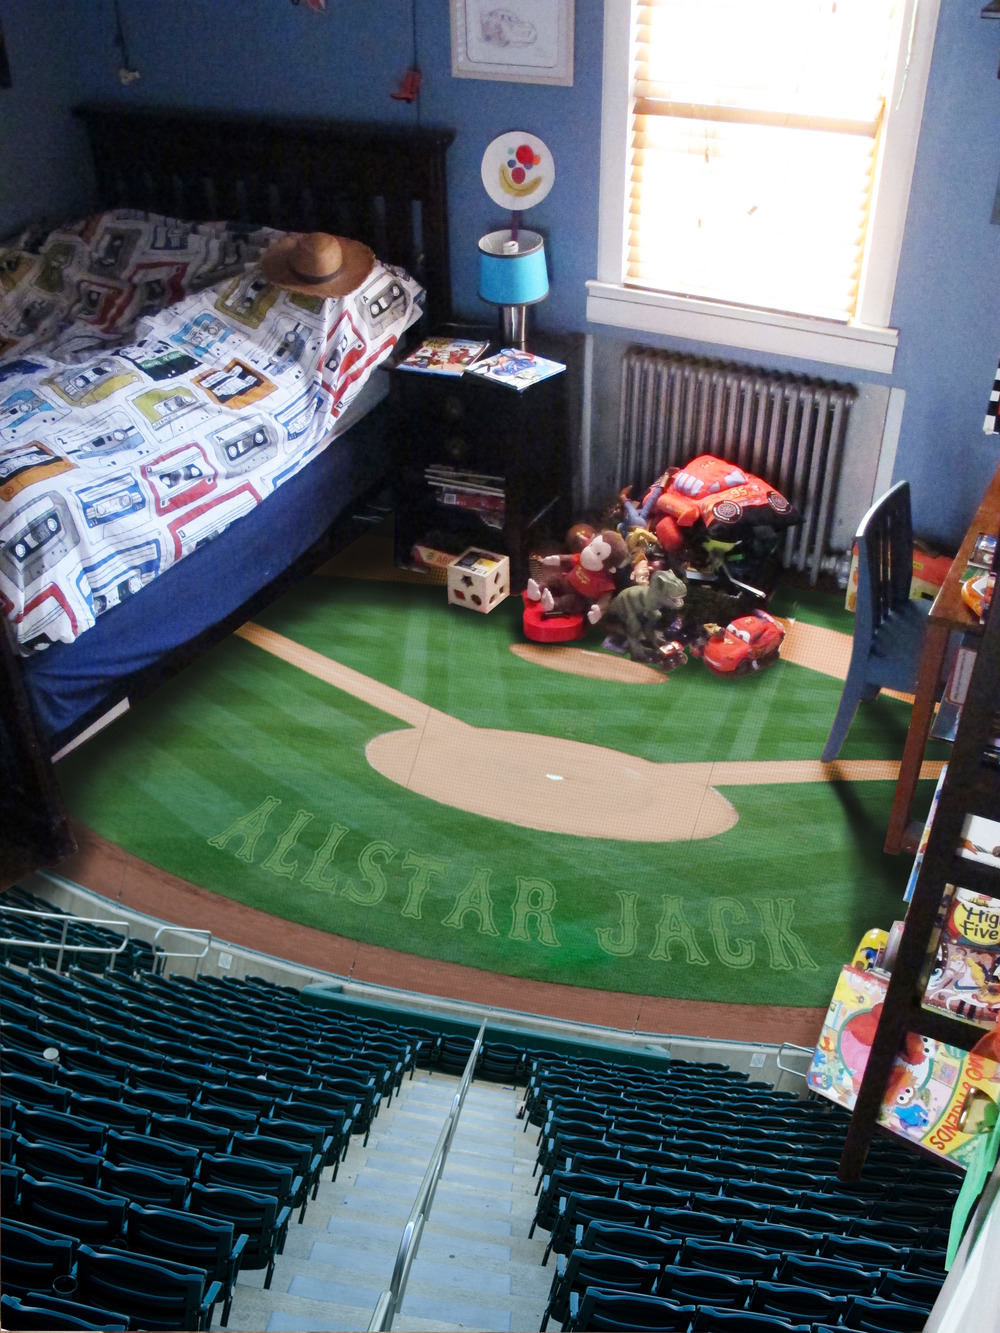 Baseball Field Wallpaper Mural This fully flat floor mural 1000x1333